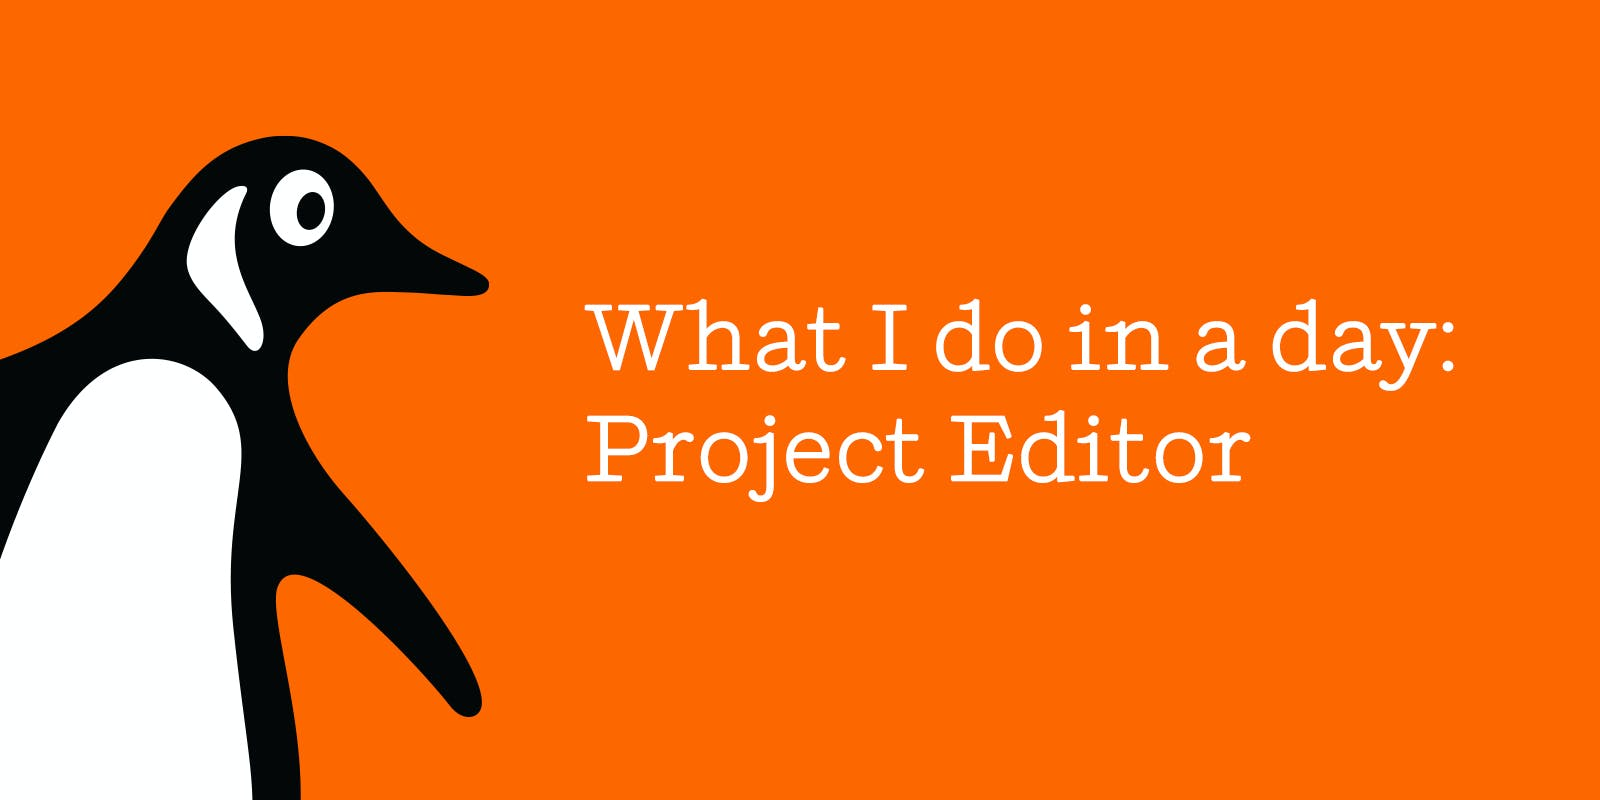 What I do in a day: Project Editor